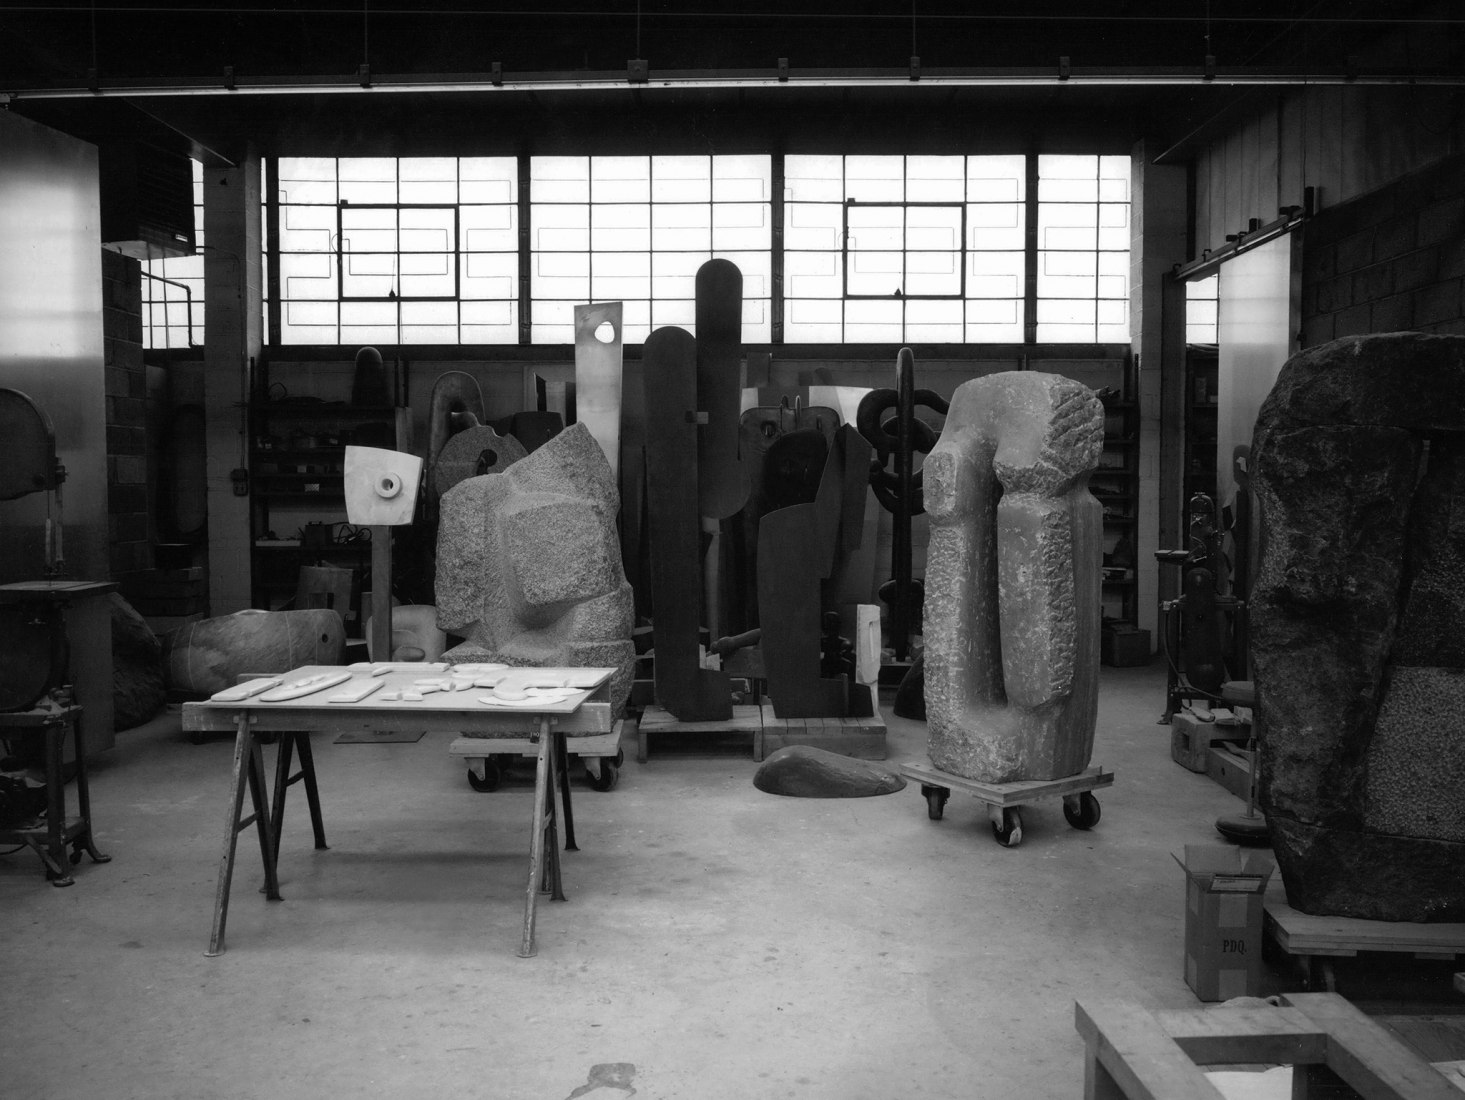 ​Isamu Noguchi's 10th Street studio (work space), Long Island City, c. 1960s. The Noguchi Museum Archive. ©The Isamu Noguchi Foundation and Garden Museum, New York / Artists Rights Society (ARS).